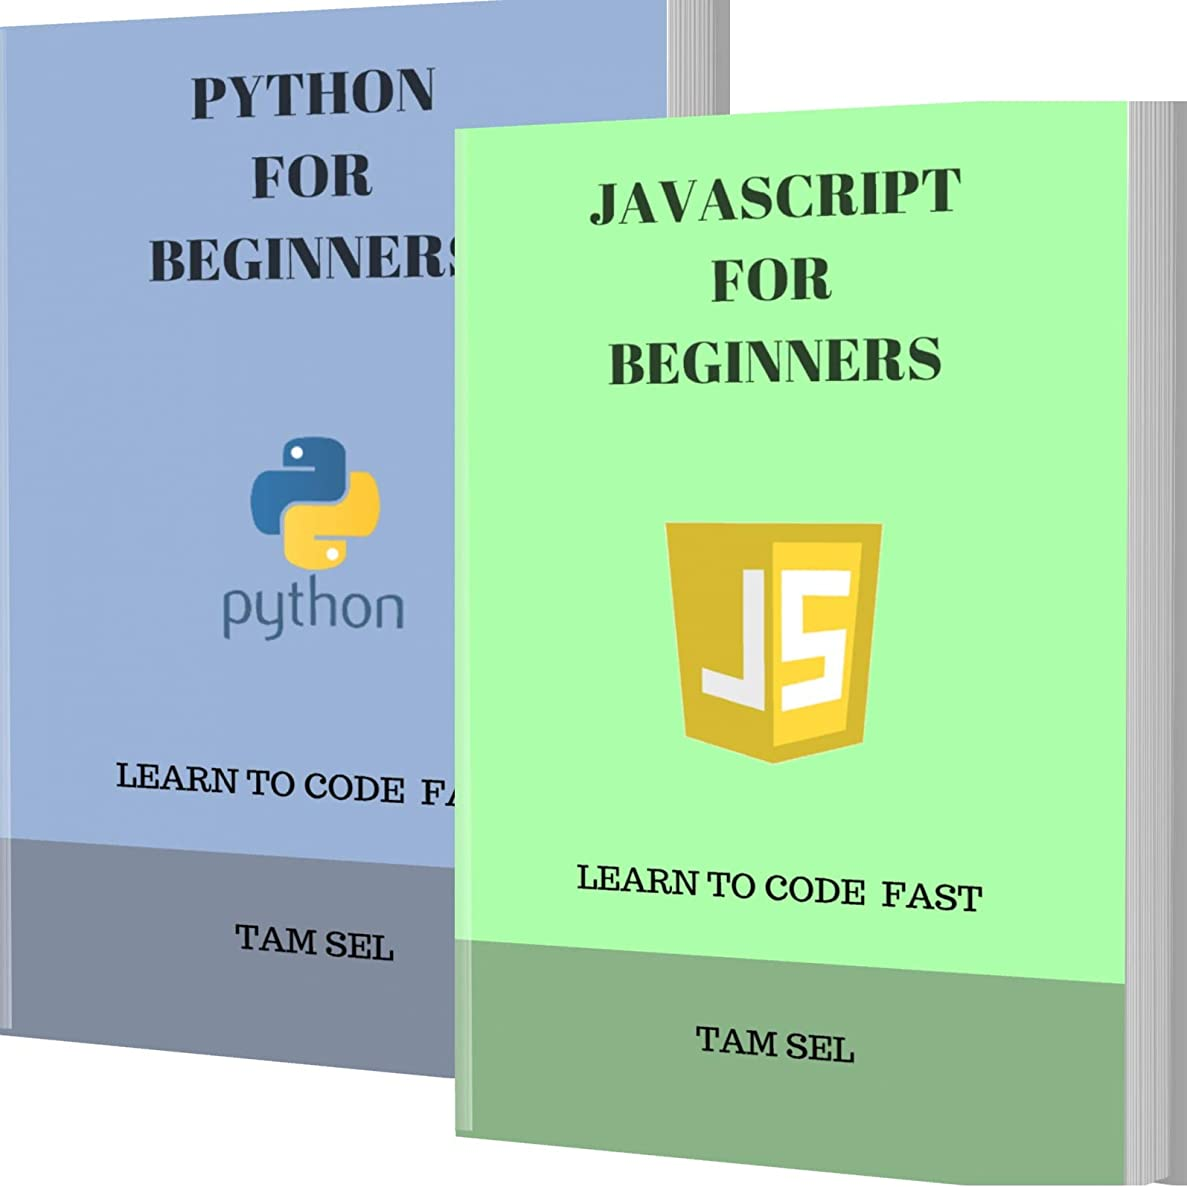 歩道子羊進行中JAVASCRIPT AND PYTHON FOR BEGINNERS: 2 BOOKS IN 1 - Learn Coding Fast! JS Programming Language And PYTHON Crash Course, A QuickStart Guide, Tutorial Book ... Examples, In Easy Steps! (English Edition)